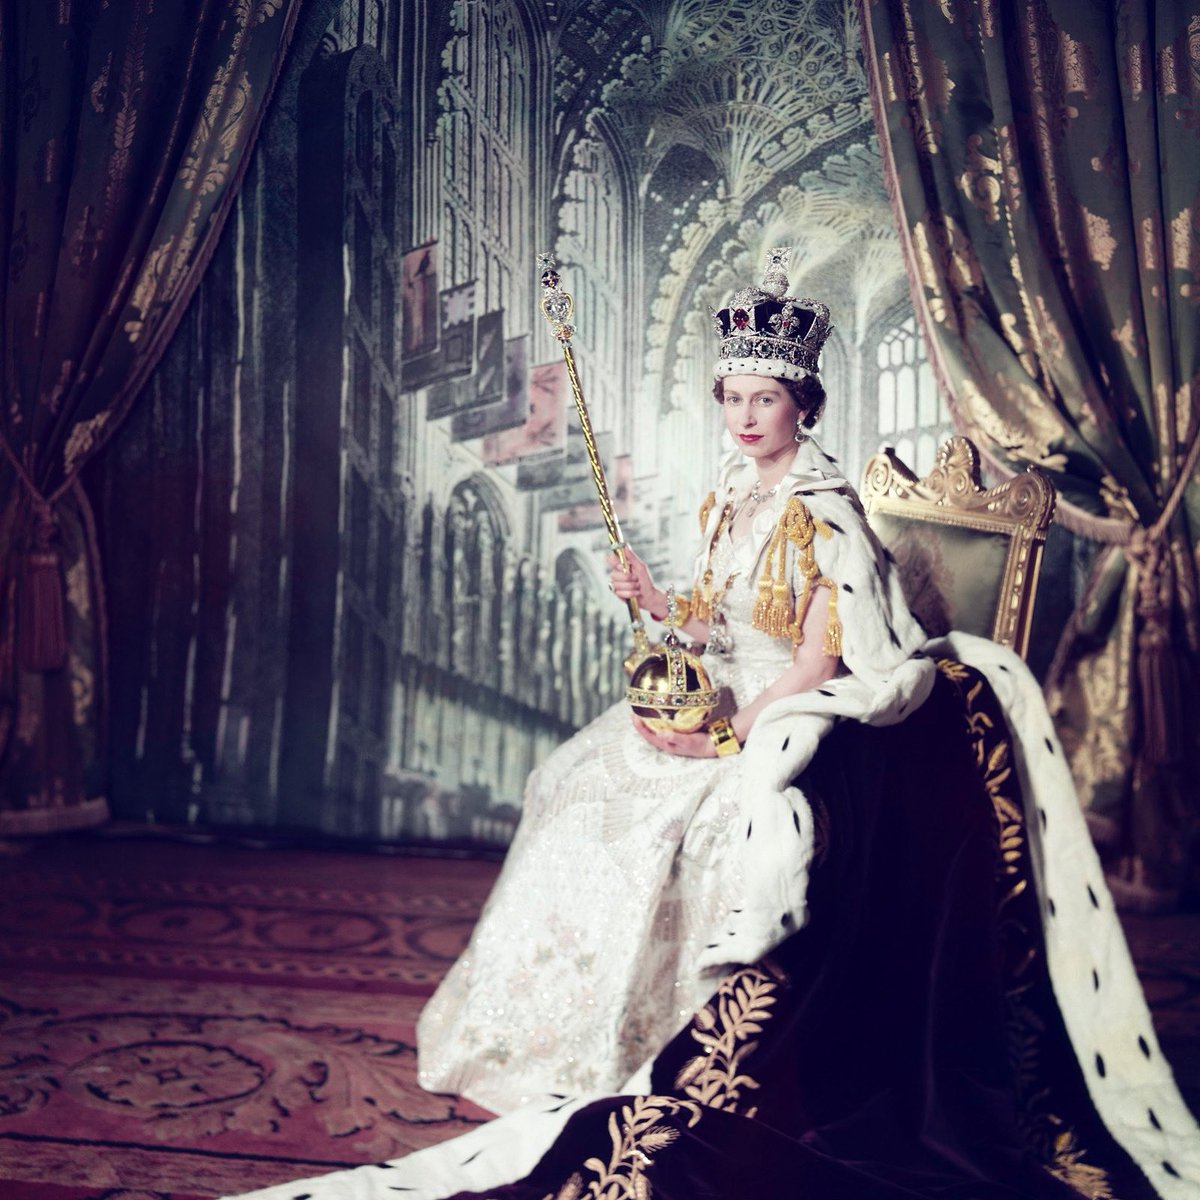 Her Majesty deliberately chose the anniversary of her Coronation as the date for the announcement of @QueensAwardVS to acknowledge the work of volunteers across the UK #QAVS2020